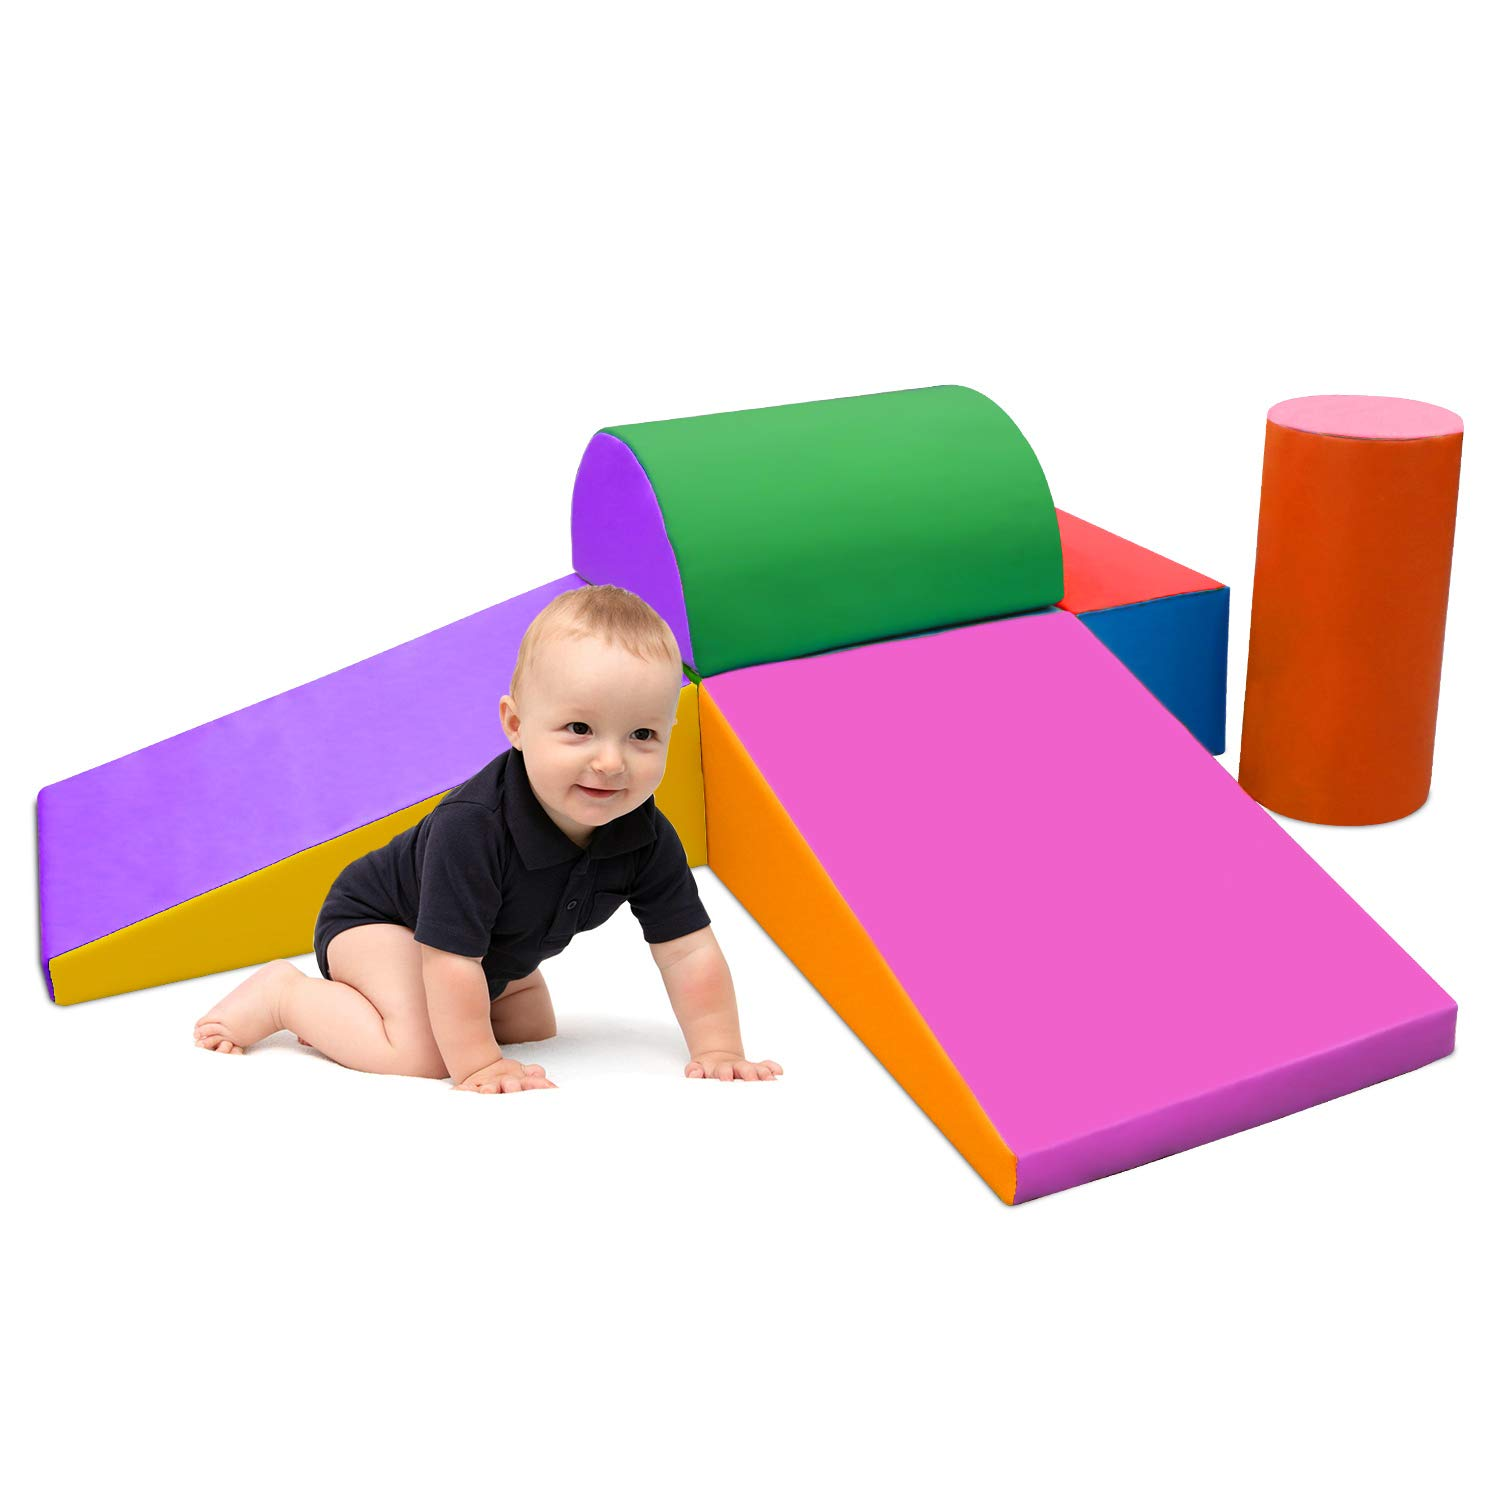 SURPCOS Climb and Crawl Activity Play Set, 6 Pieces Lightweight Foam Shapes for Climbing, Crawling and Sliding, Safe Foam Playset for Toddlers and Preschoolers, Multicolor